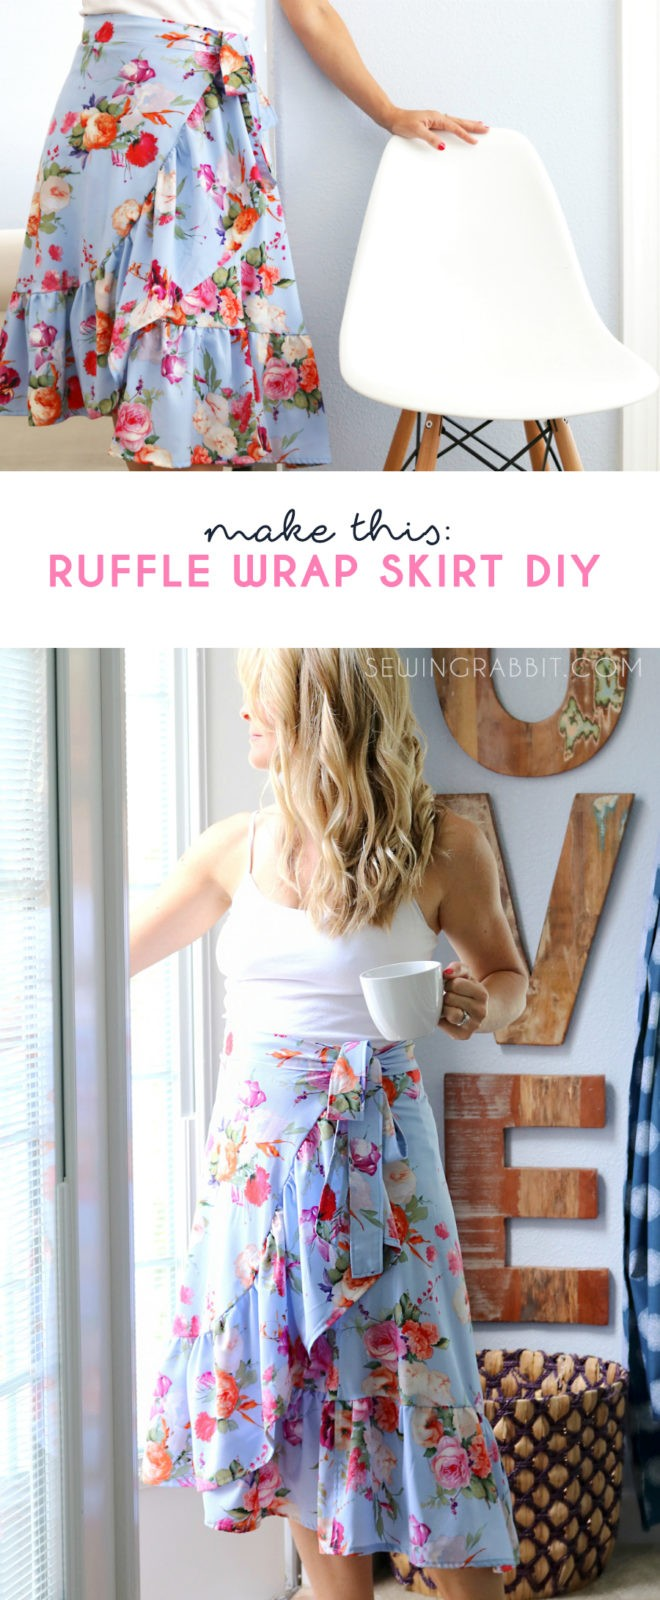 Sew a breezy bohemian style skirt, the ruffle wrap skirt!